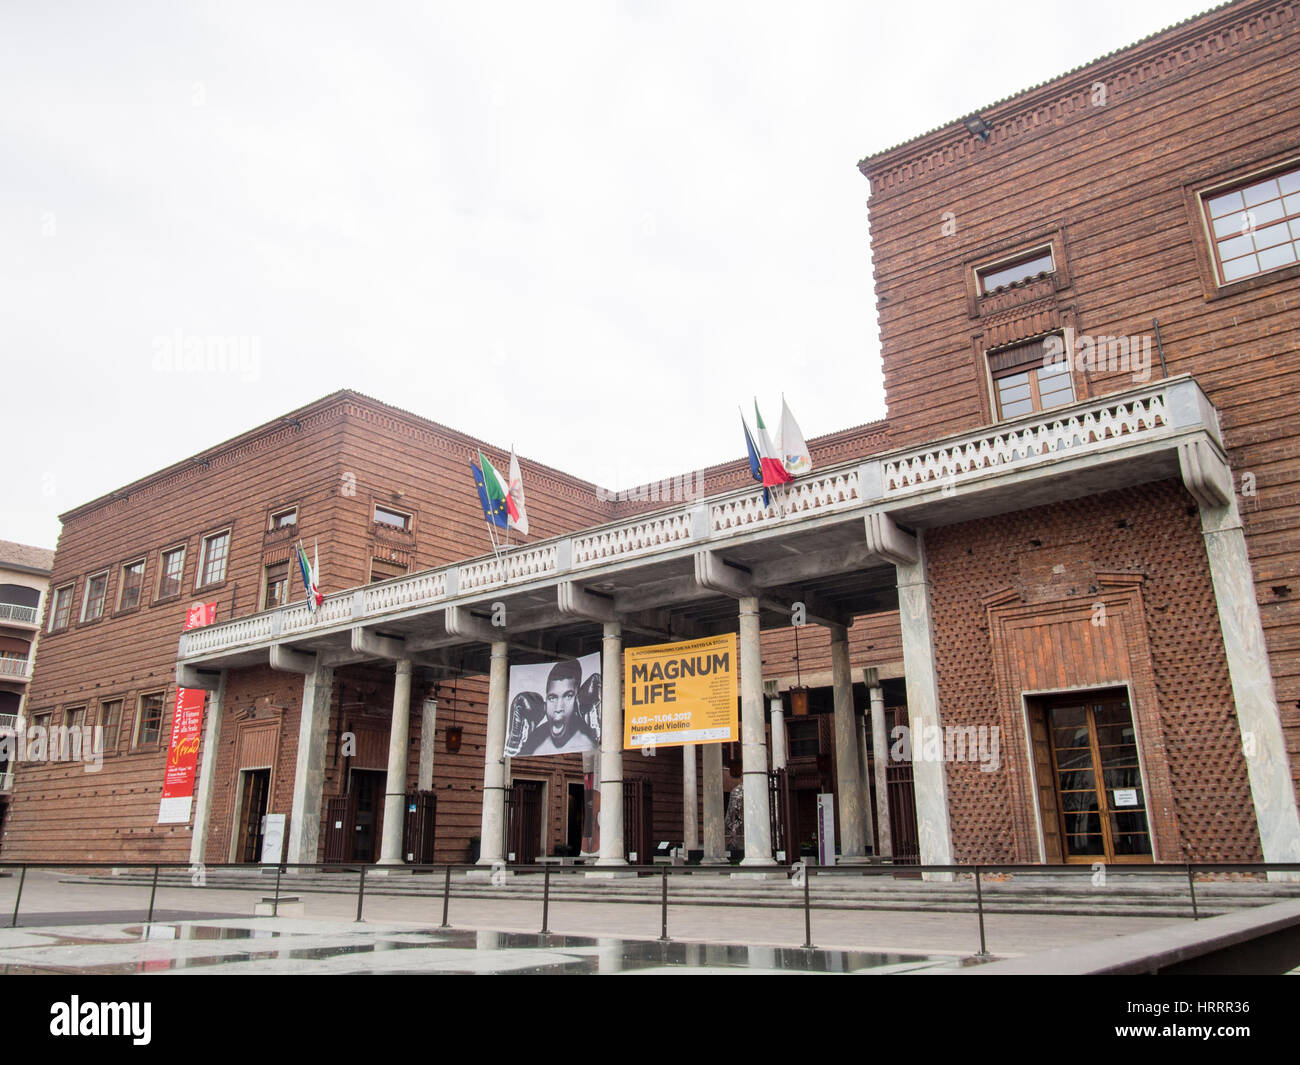 Magnum  Life photography exhibition in Cremona, Italy 4th March 2017 - 11th June 2017 - Stock Image